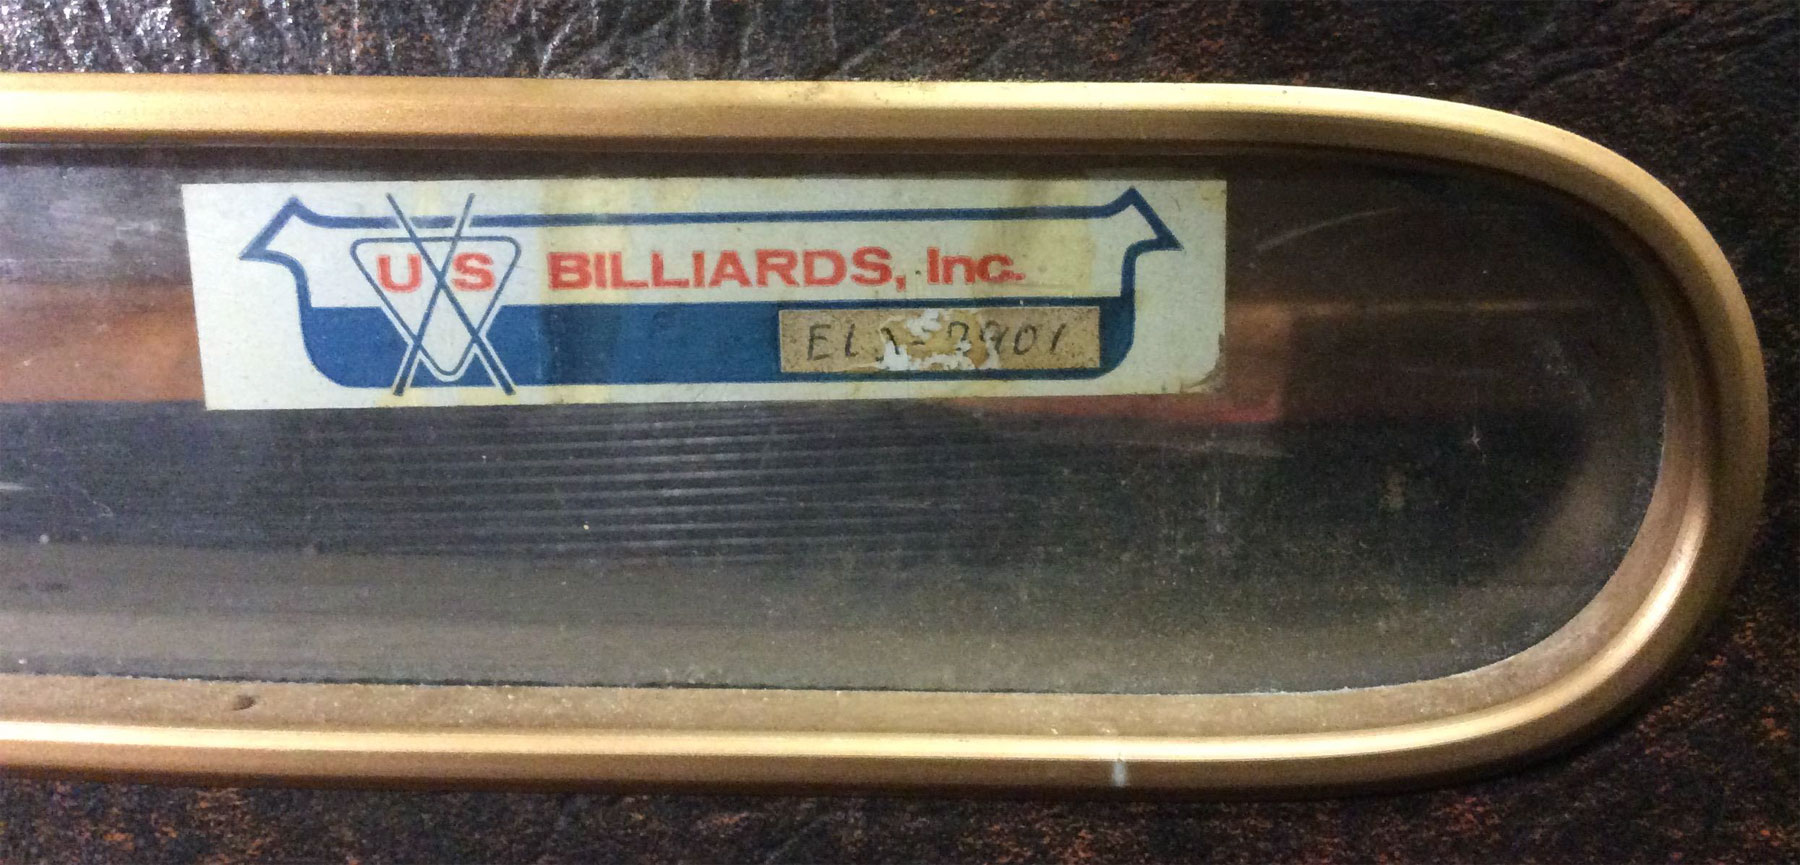 Value Of A US Billiards Inc EL Pool Table - El pool table